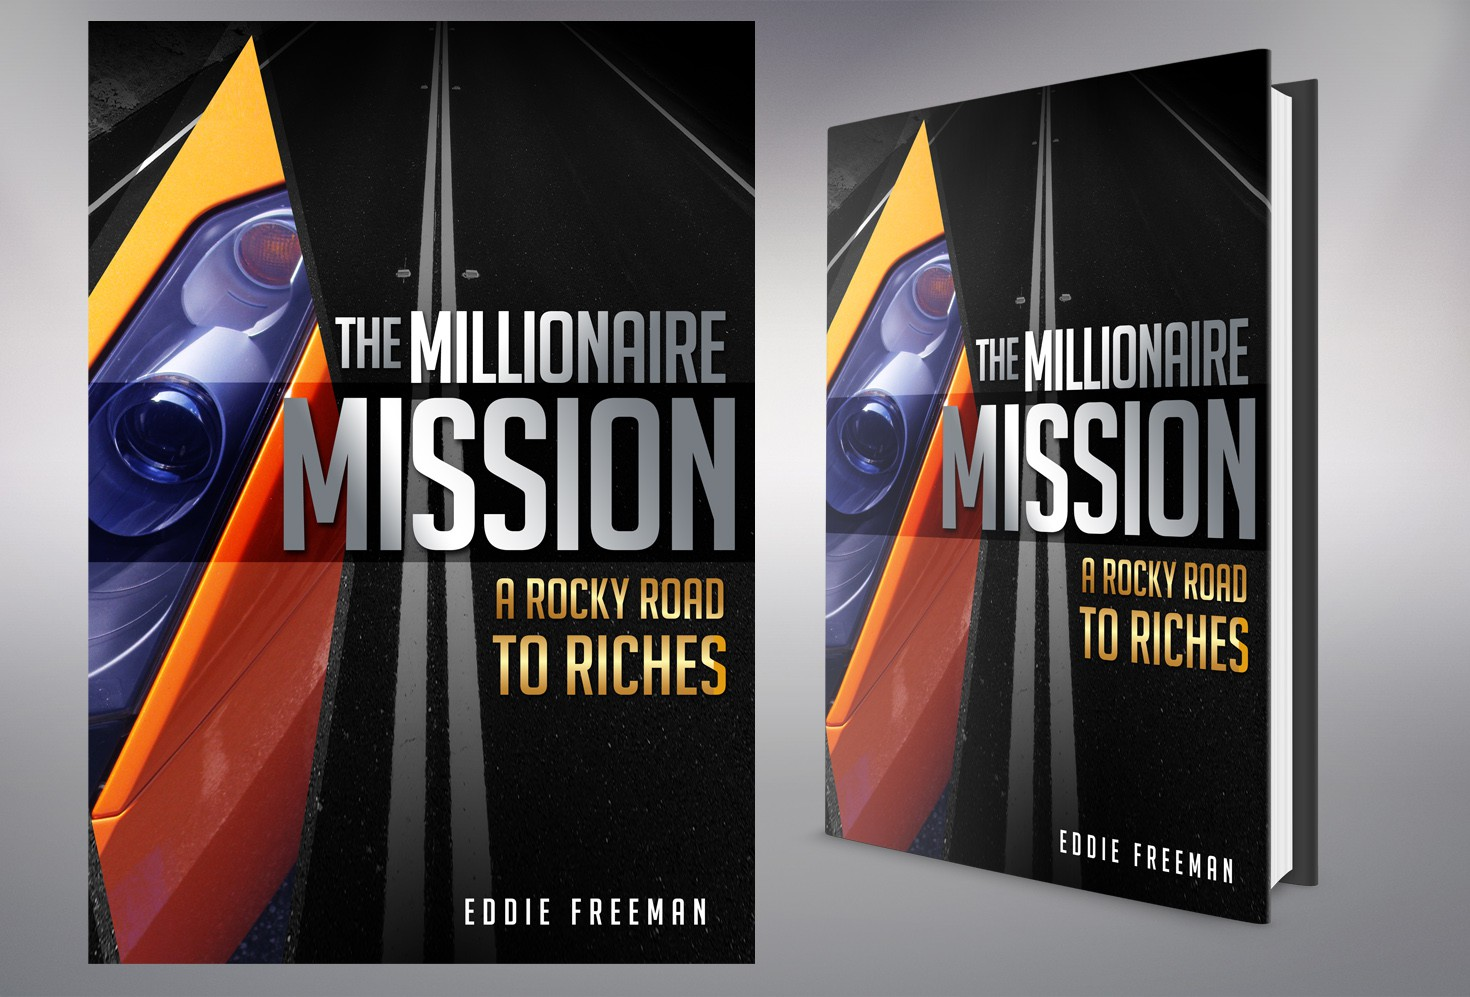 Book Cover Wanted - The Millionaire Mission